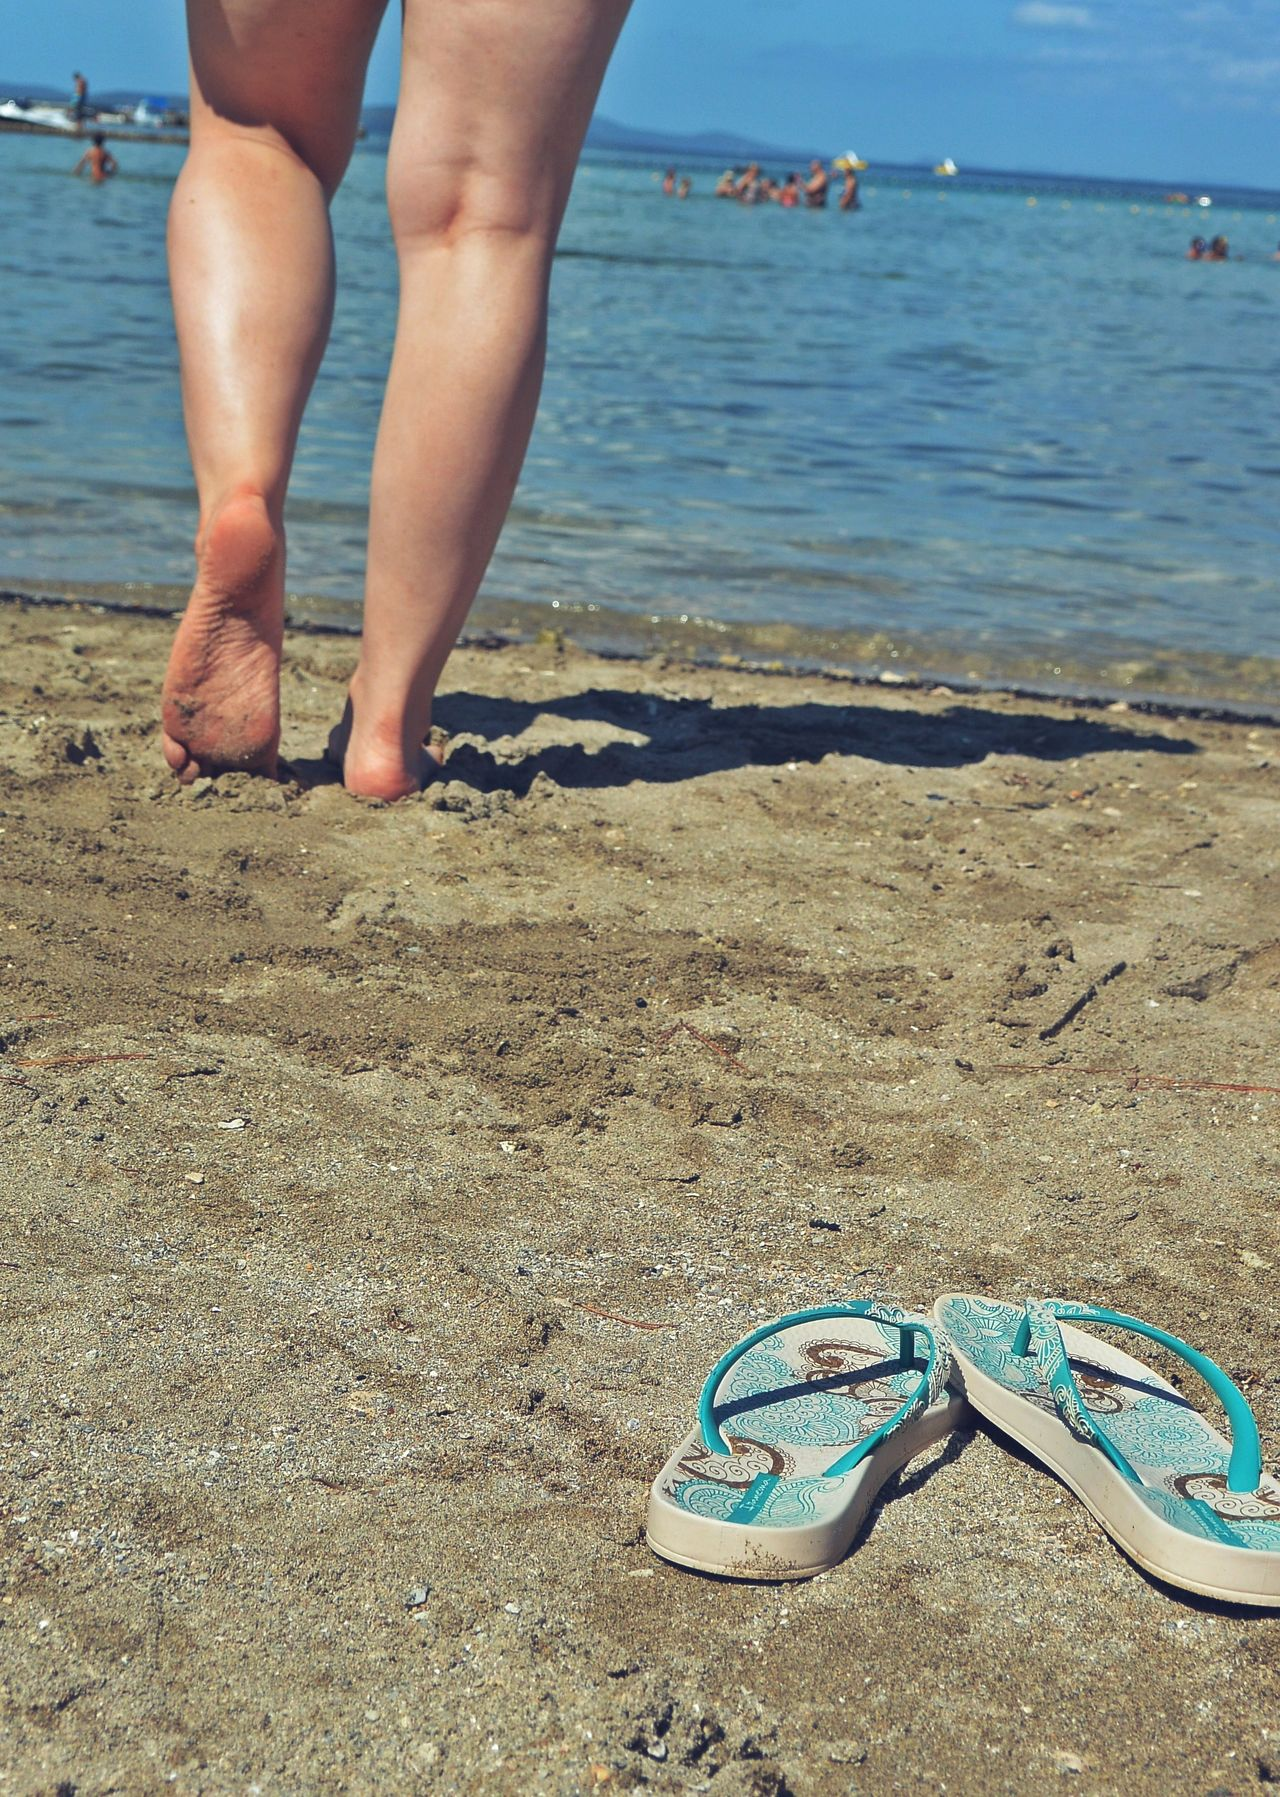 Adriatic Sea Beach Beach Life Blue Borik Croatia Day Feet Flip-flop Human Body Part Legs Legs Only Leisure Activity One Person Outdoors Sand Sea Shoes Summer Tanning Thongs Vacation Vacations Water Zadar